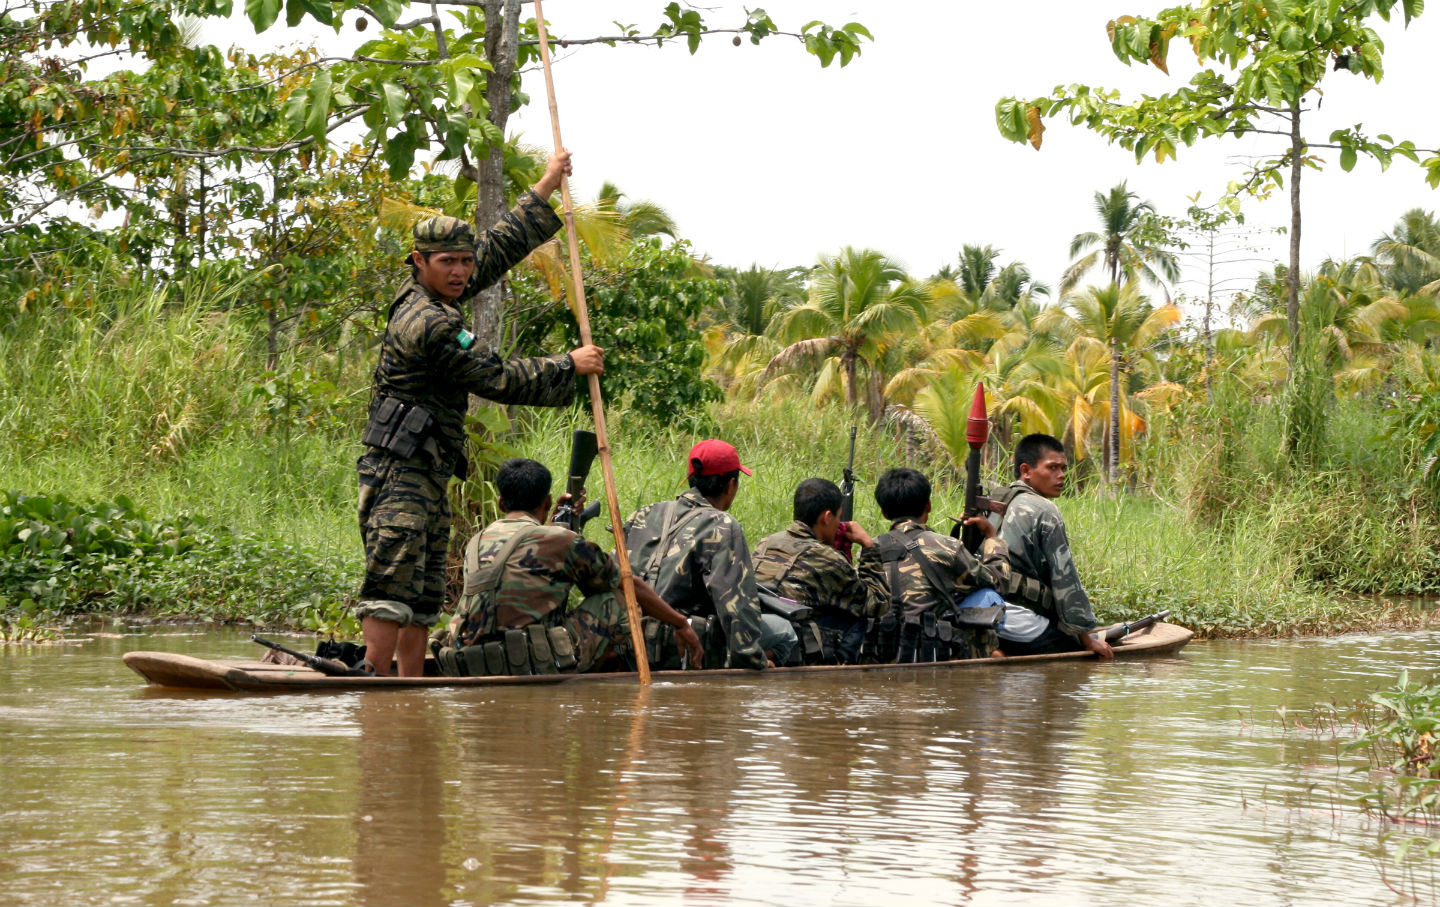 Members-of-the-Moro-Islamic-Liberation-Front